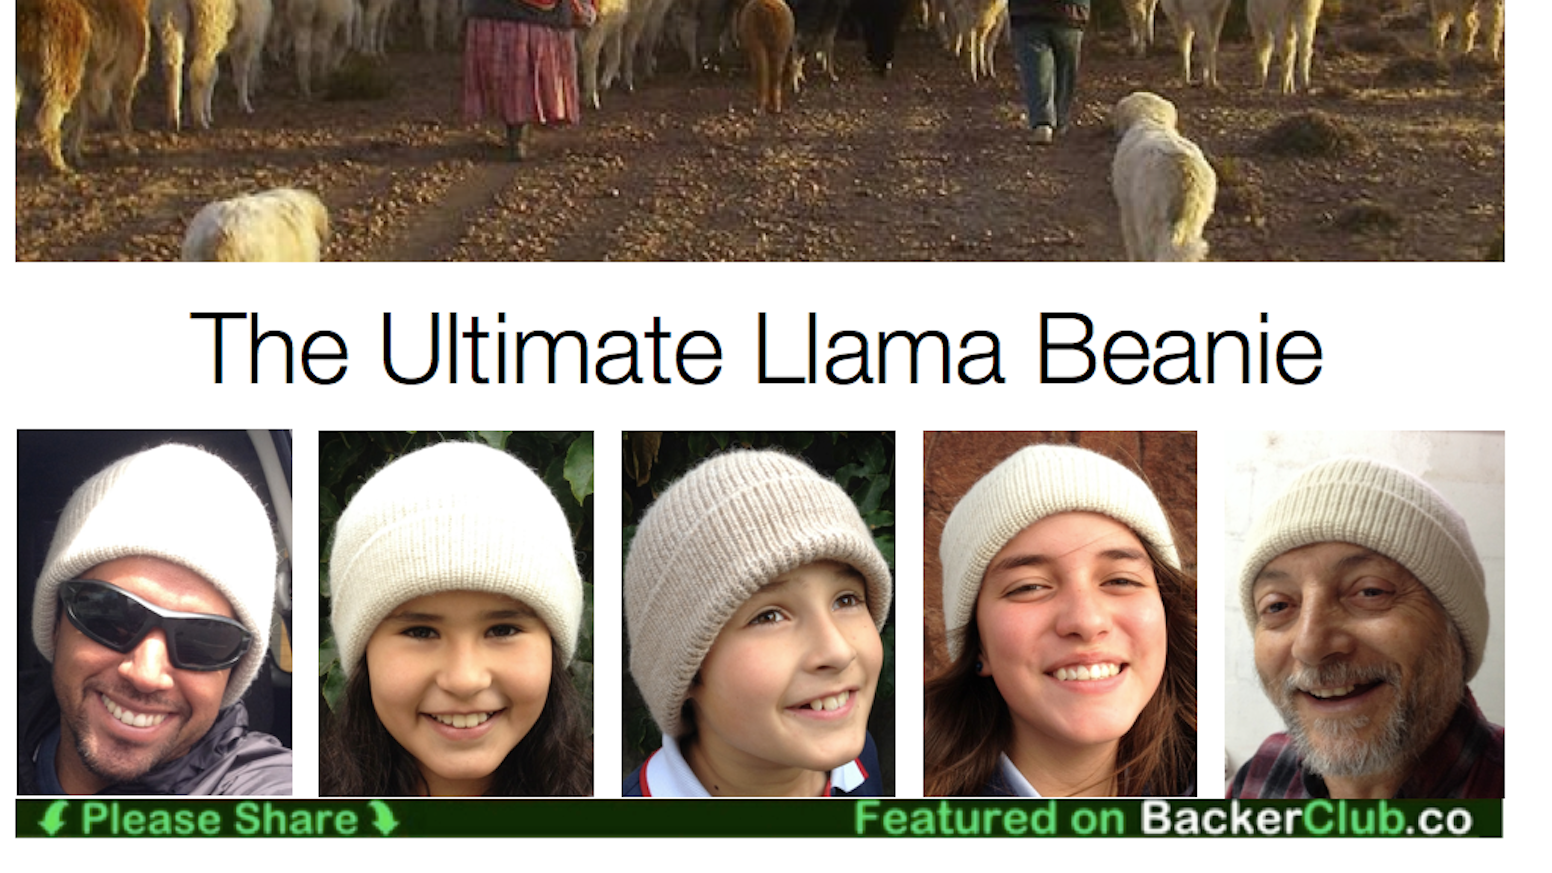 bf2efa396e2 The Ultimate Llama Beanie - Sustainable Tech from the Andes by Jorge ...